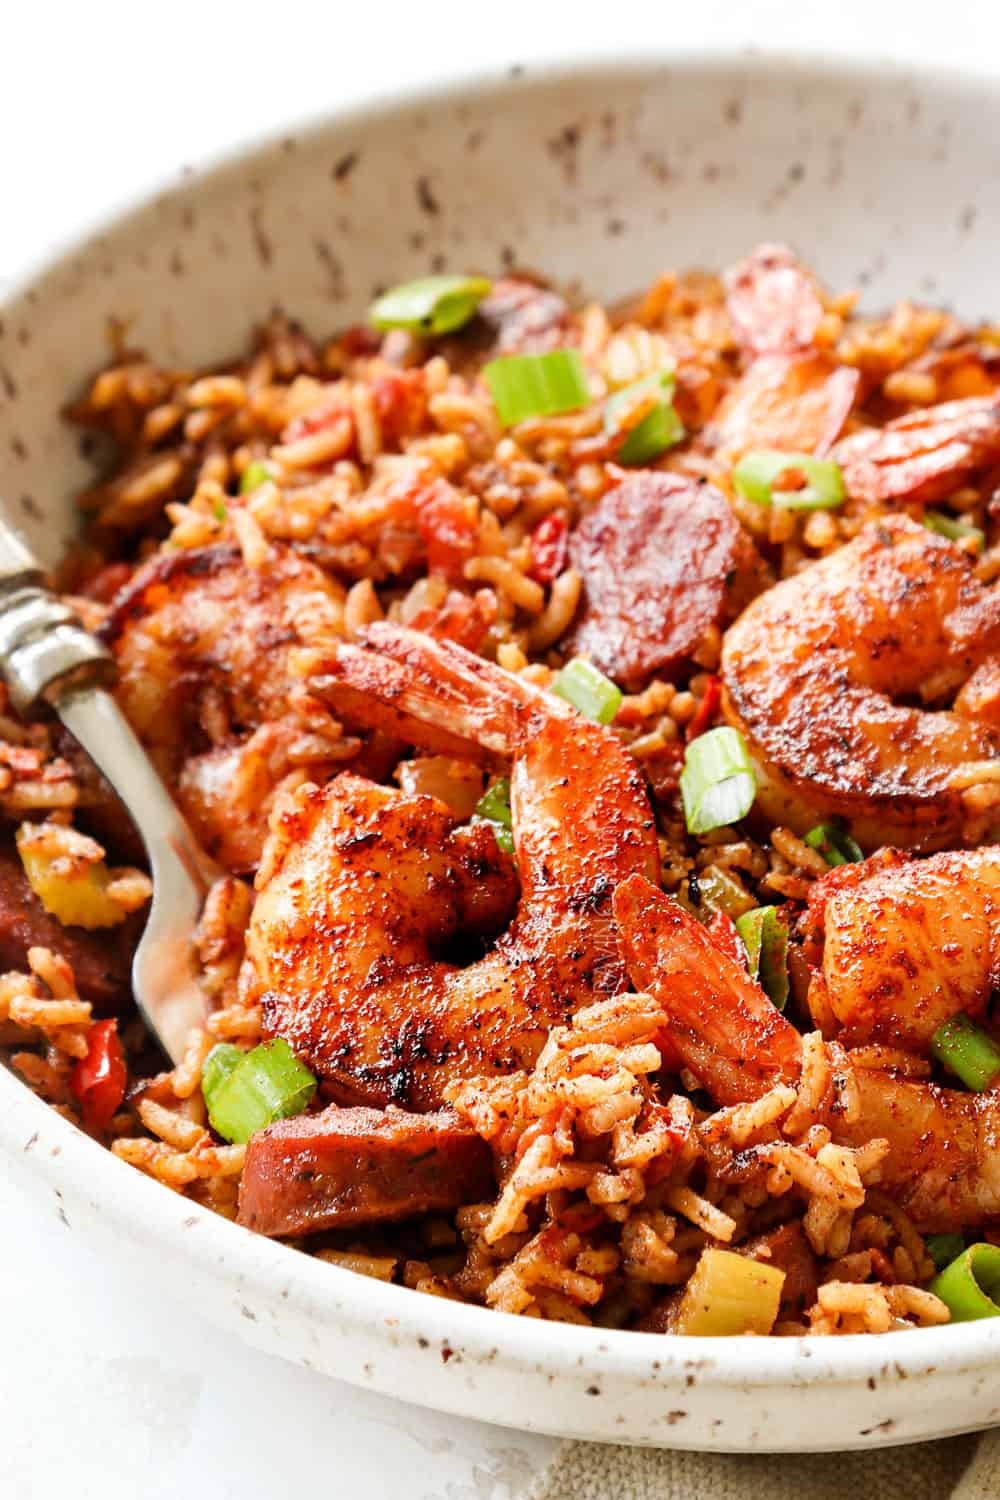 showing how to serve Cajun Shrimp and Rice by adding a serving to a bowl and garnishing with green onions